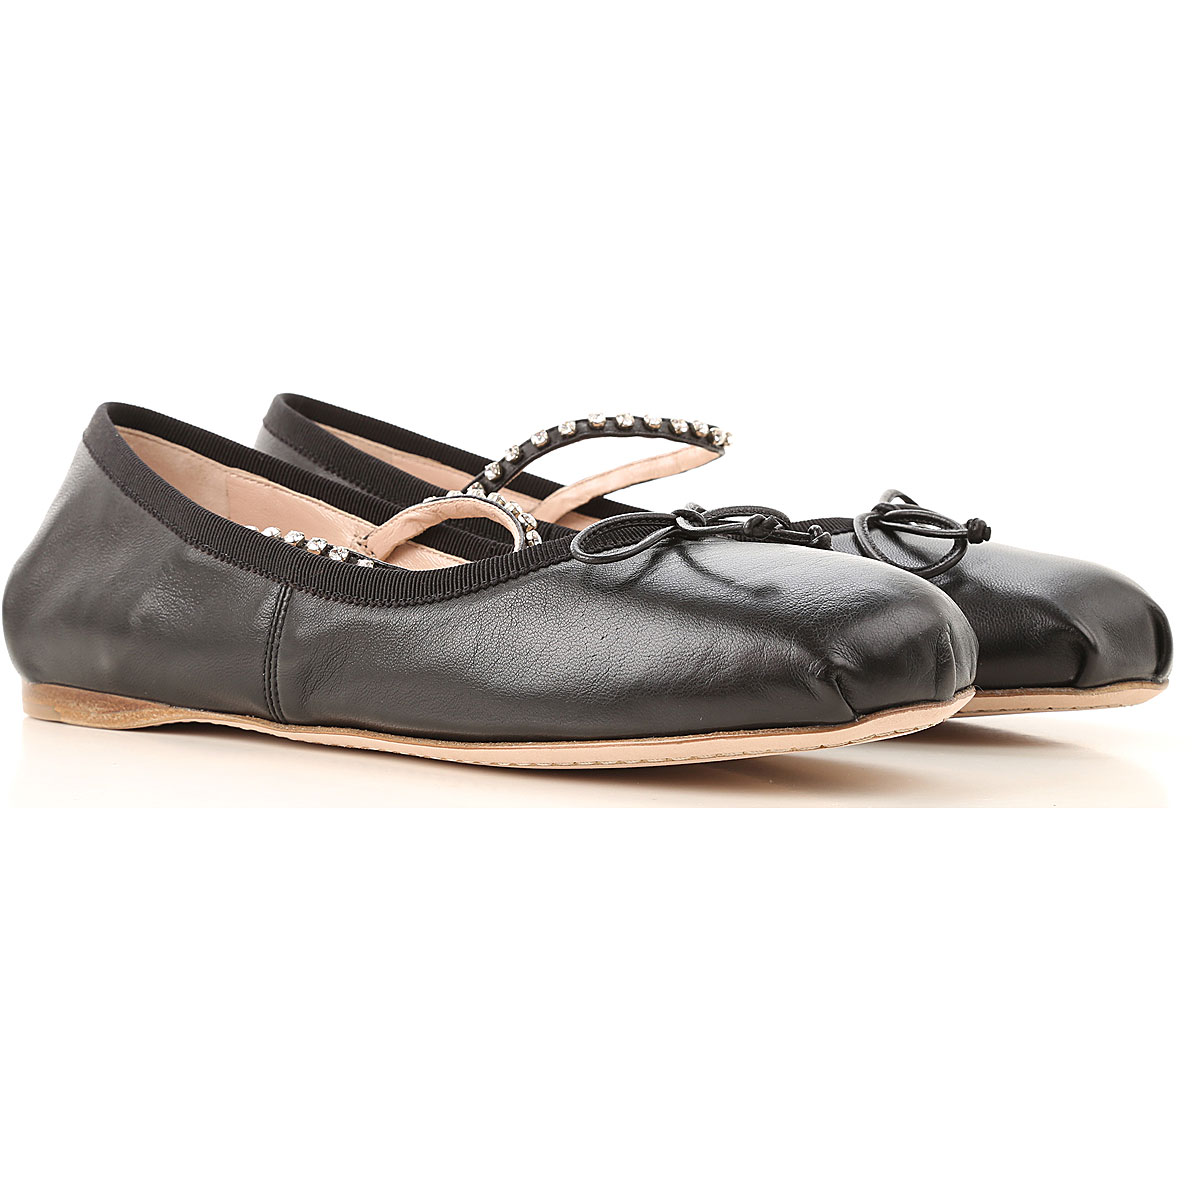 Miu Miu Ballet Flats Ballerina Shoes for Women On Sale, Black, Leather, 2019, 6 8